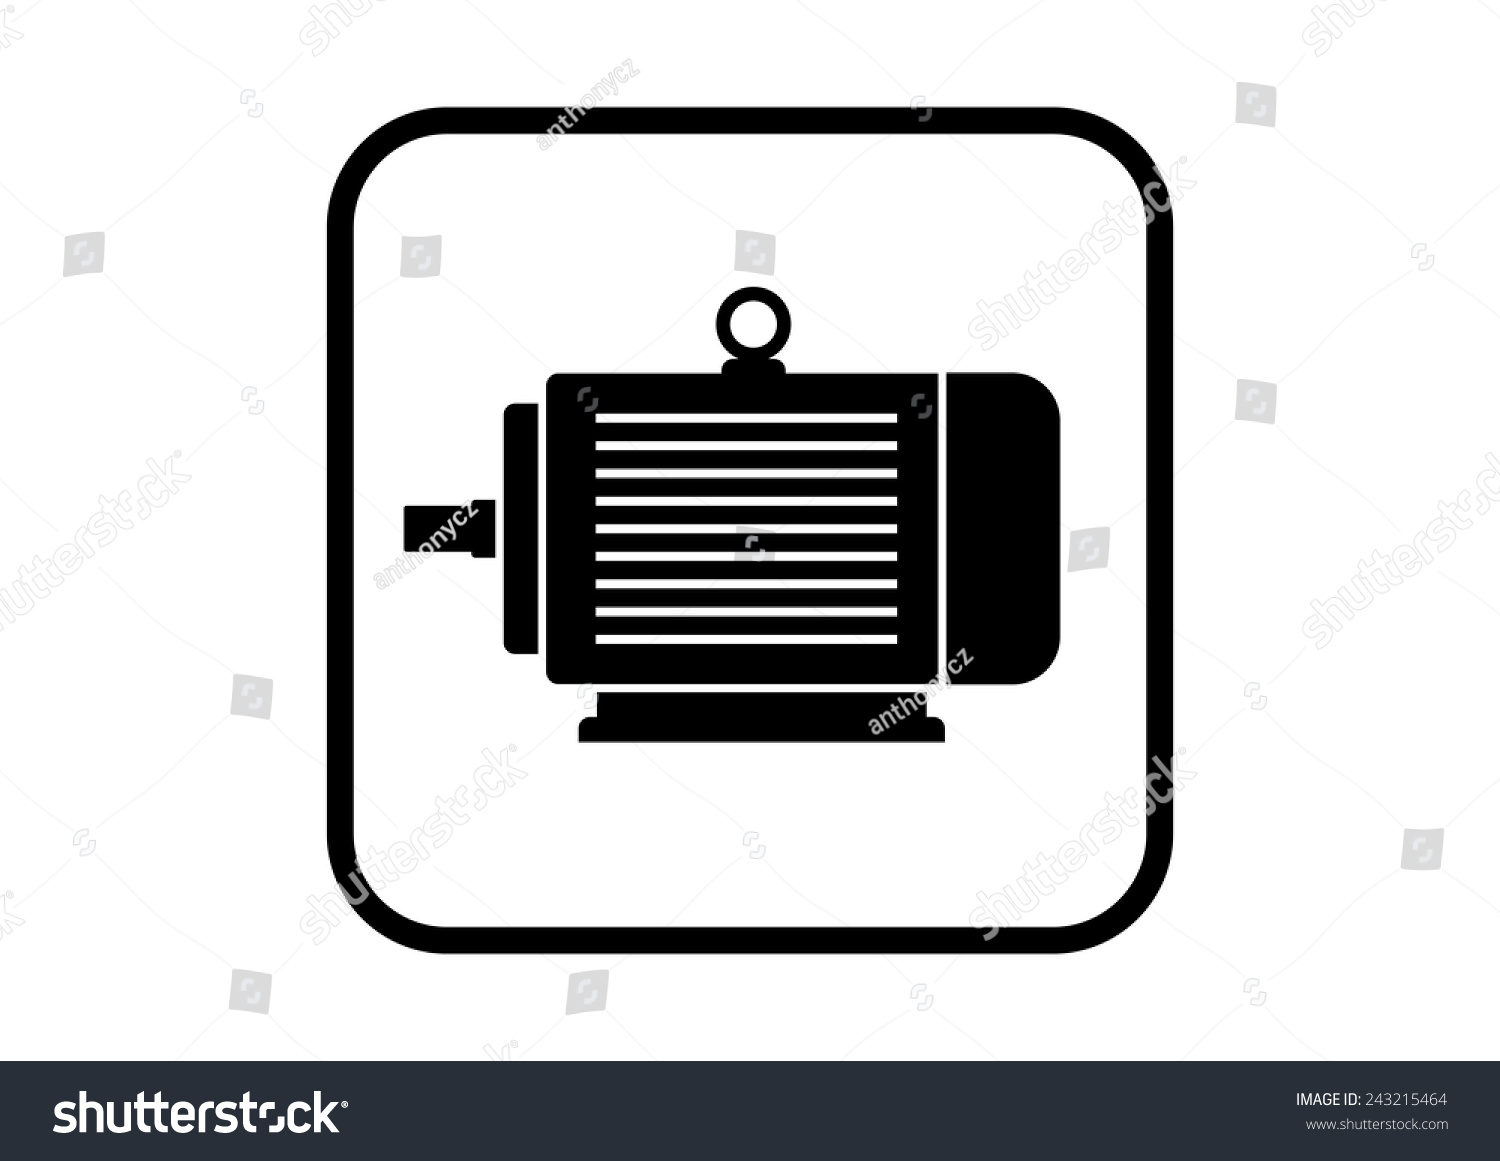 Electric Motor Icon On White Background Stock Vector 243215464 ... for Electric Motor Symbol  588gtk